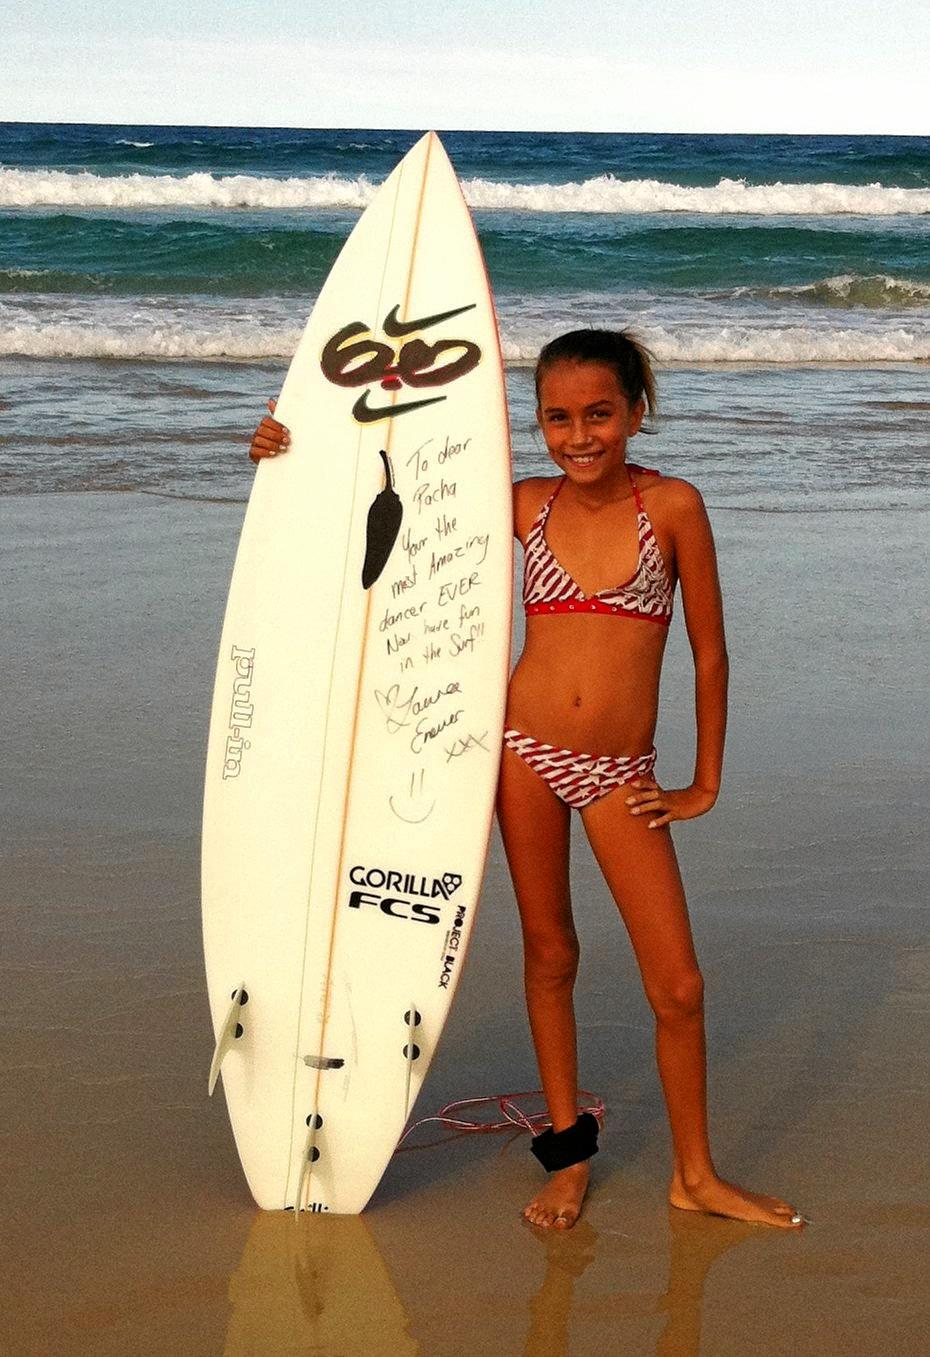 A nine-year-old Pacha Light with that board, donated by Enever.